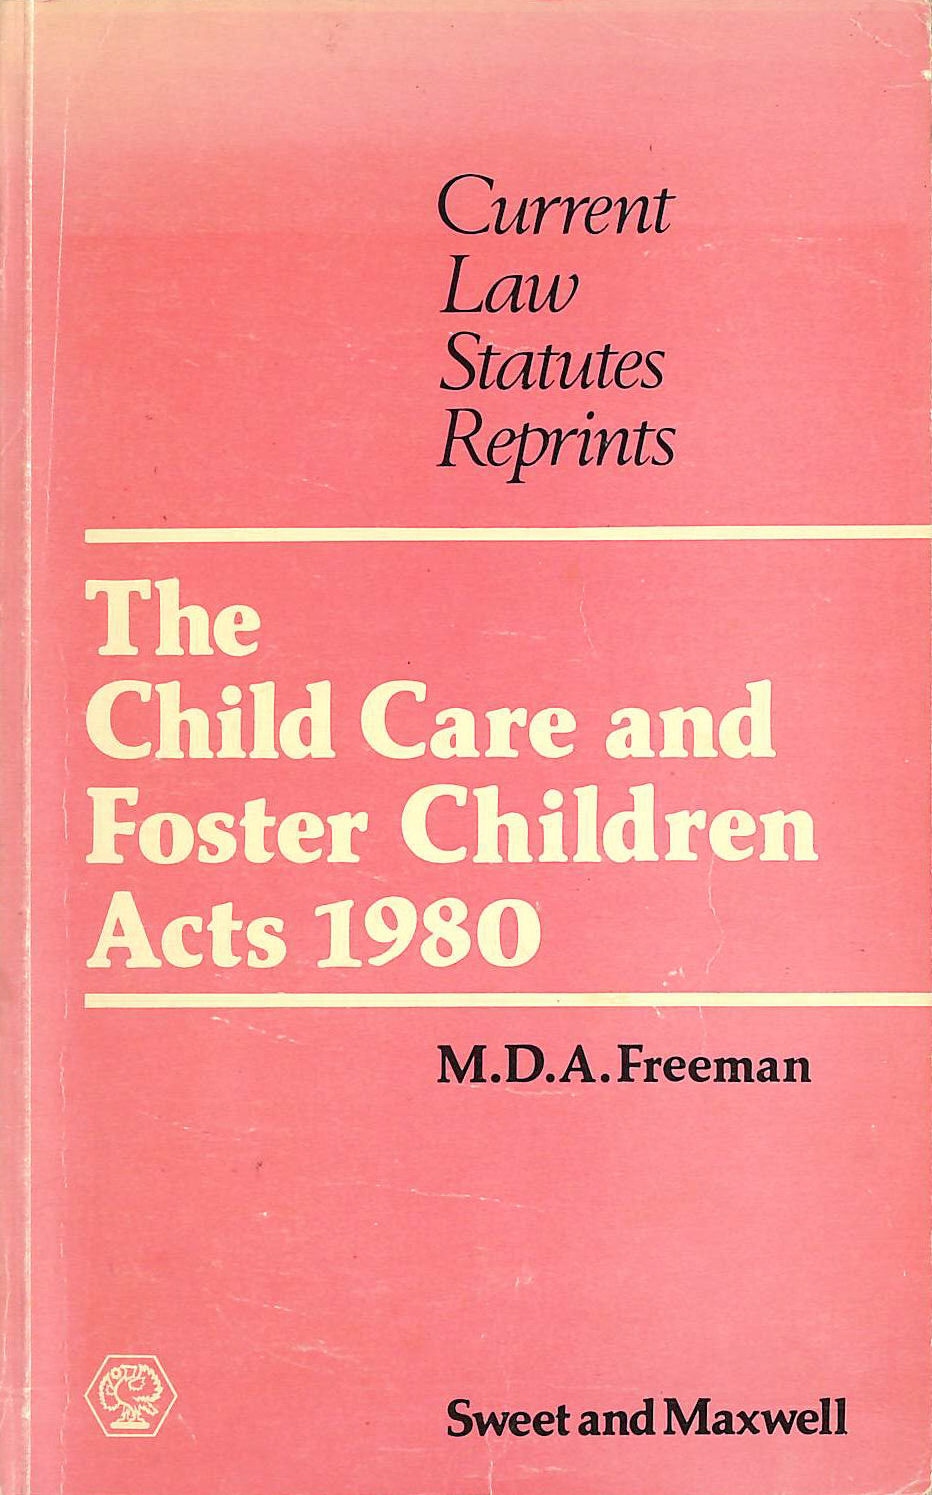 Image for Child Care and Foster Children Acts, 1980 (Current law statutes reprints)